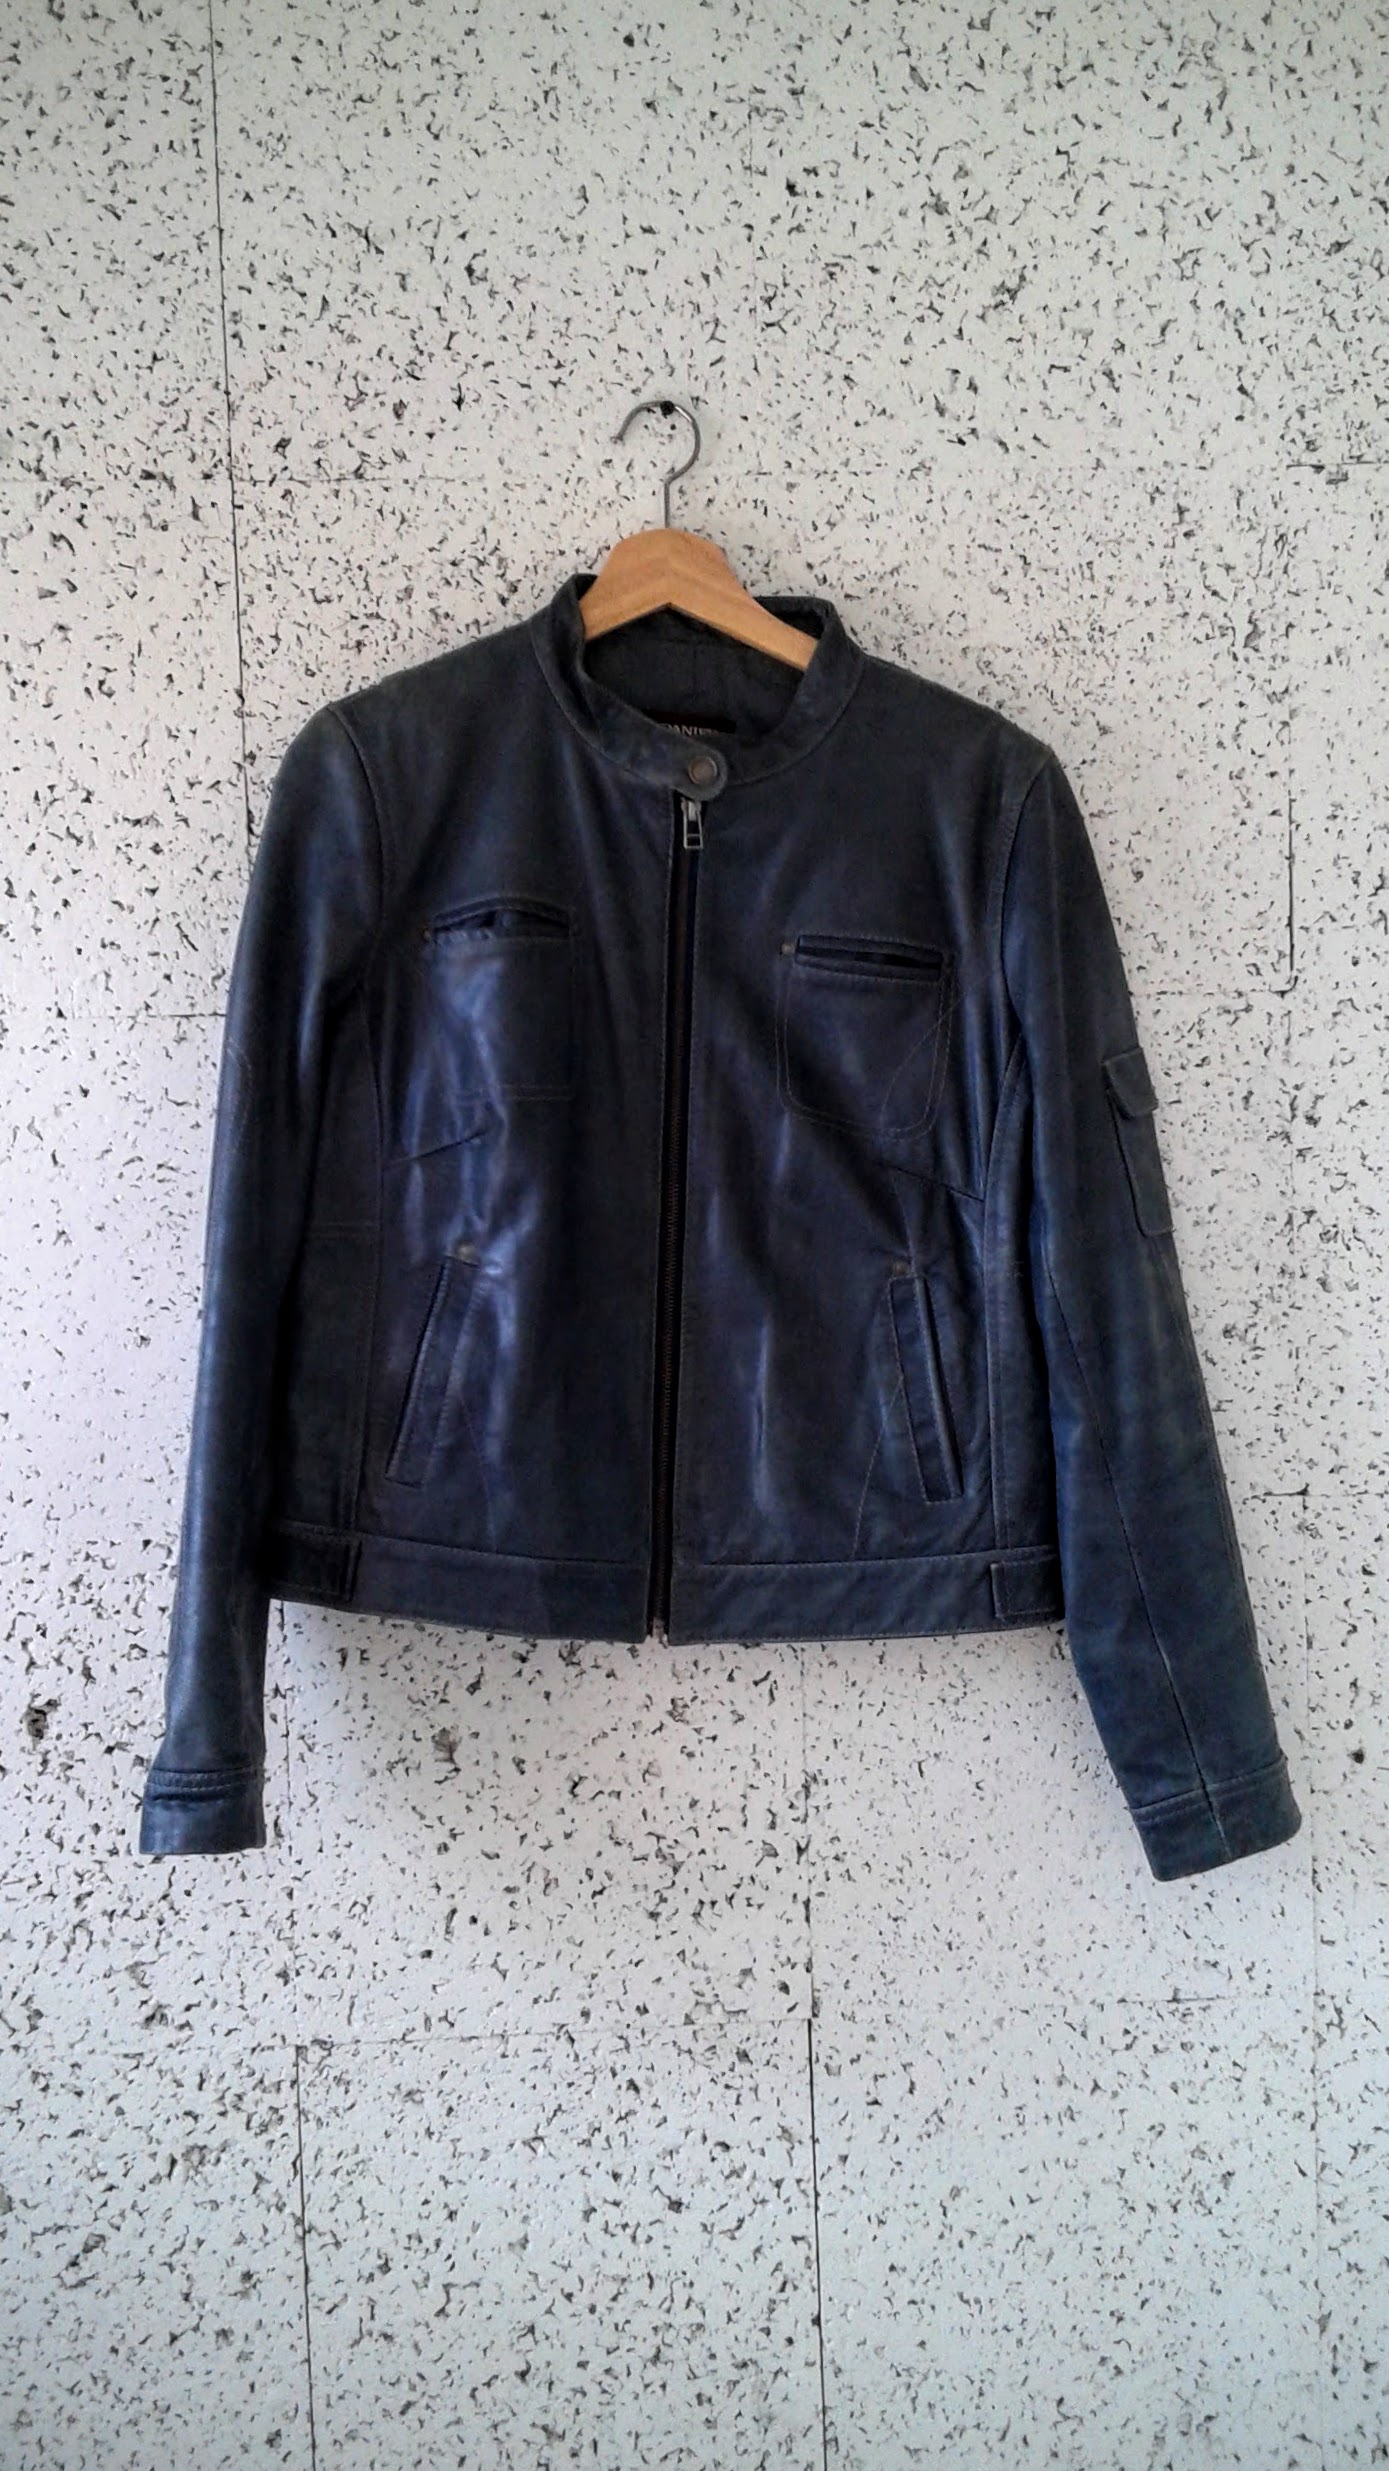 Danier leather jacket; Size M, $62